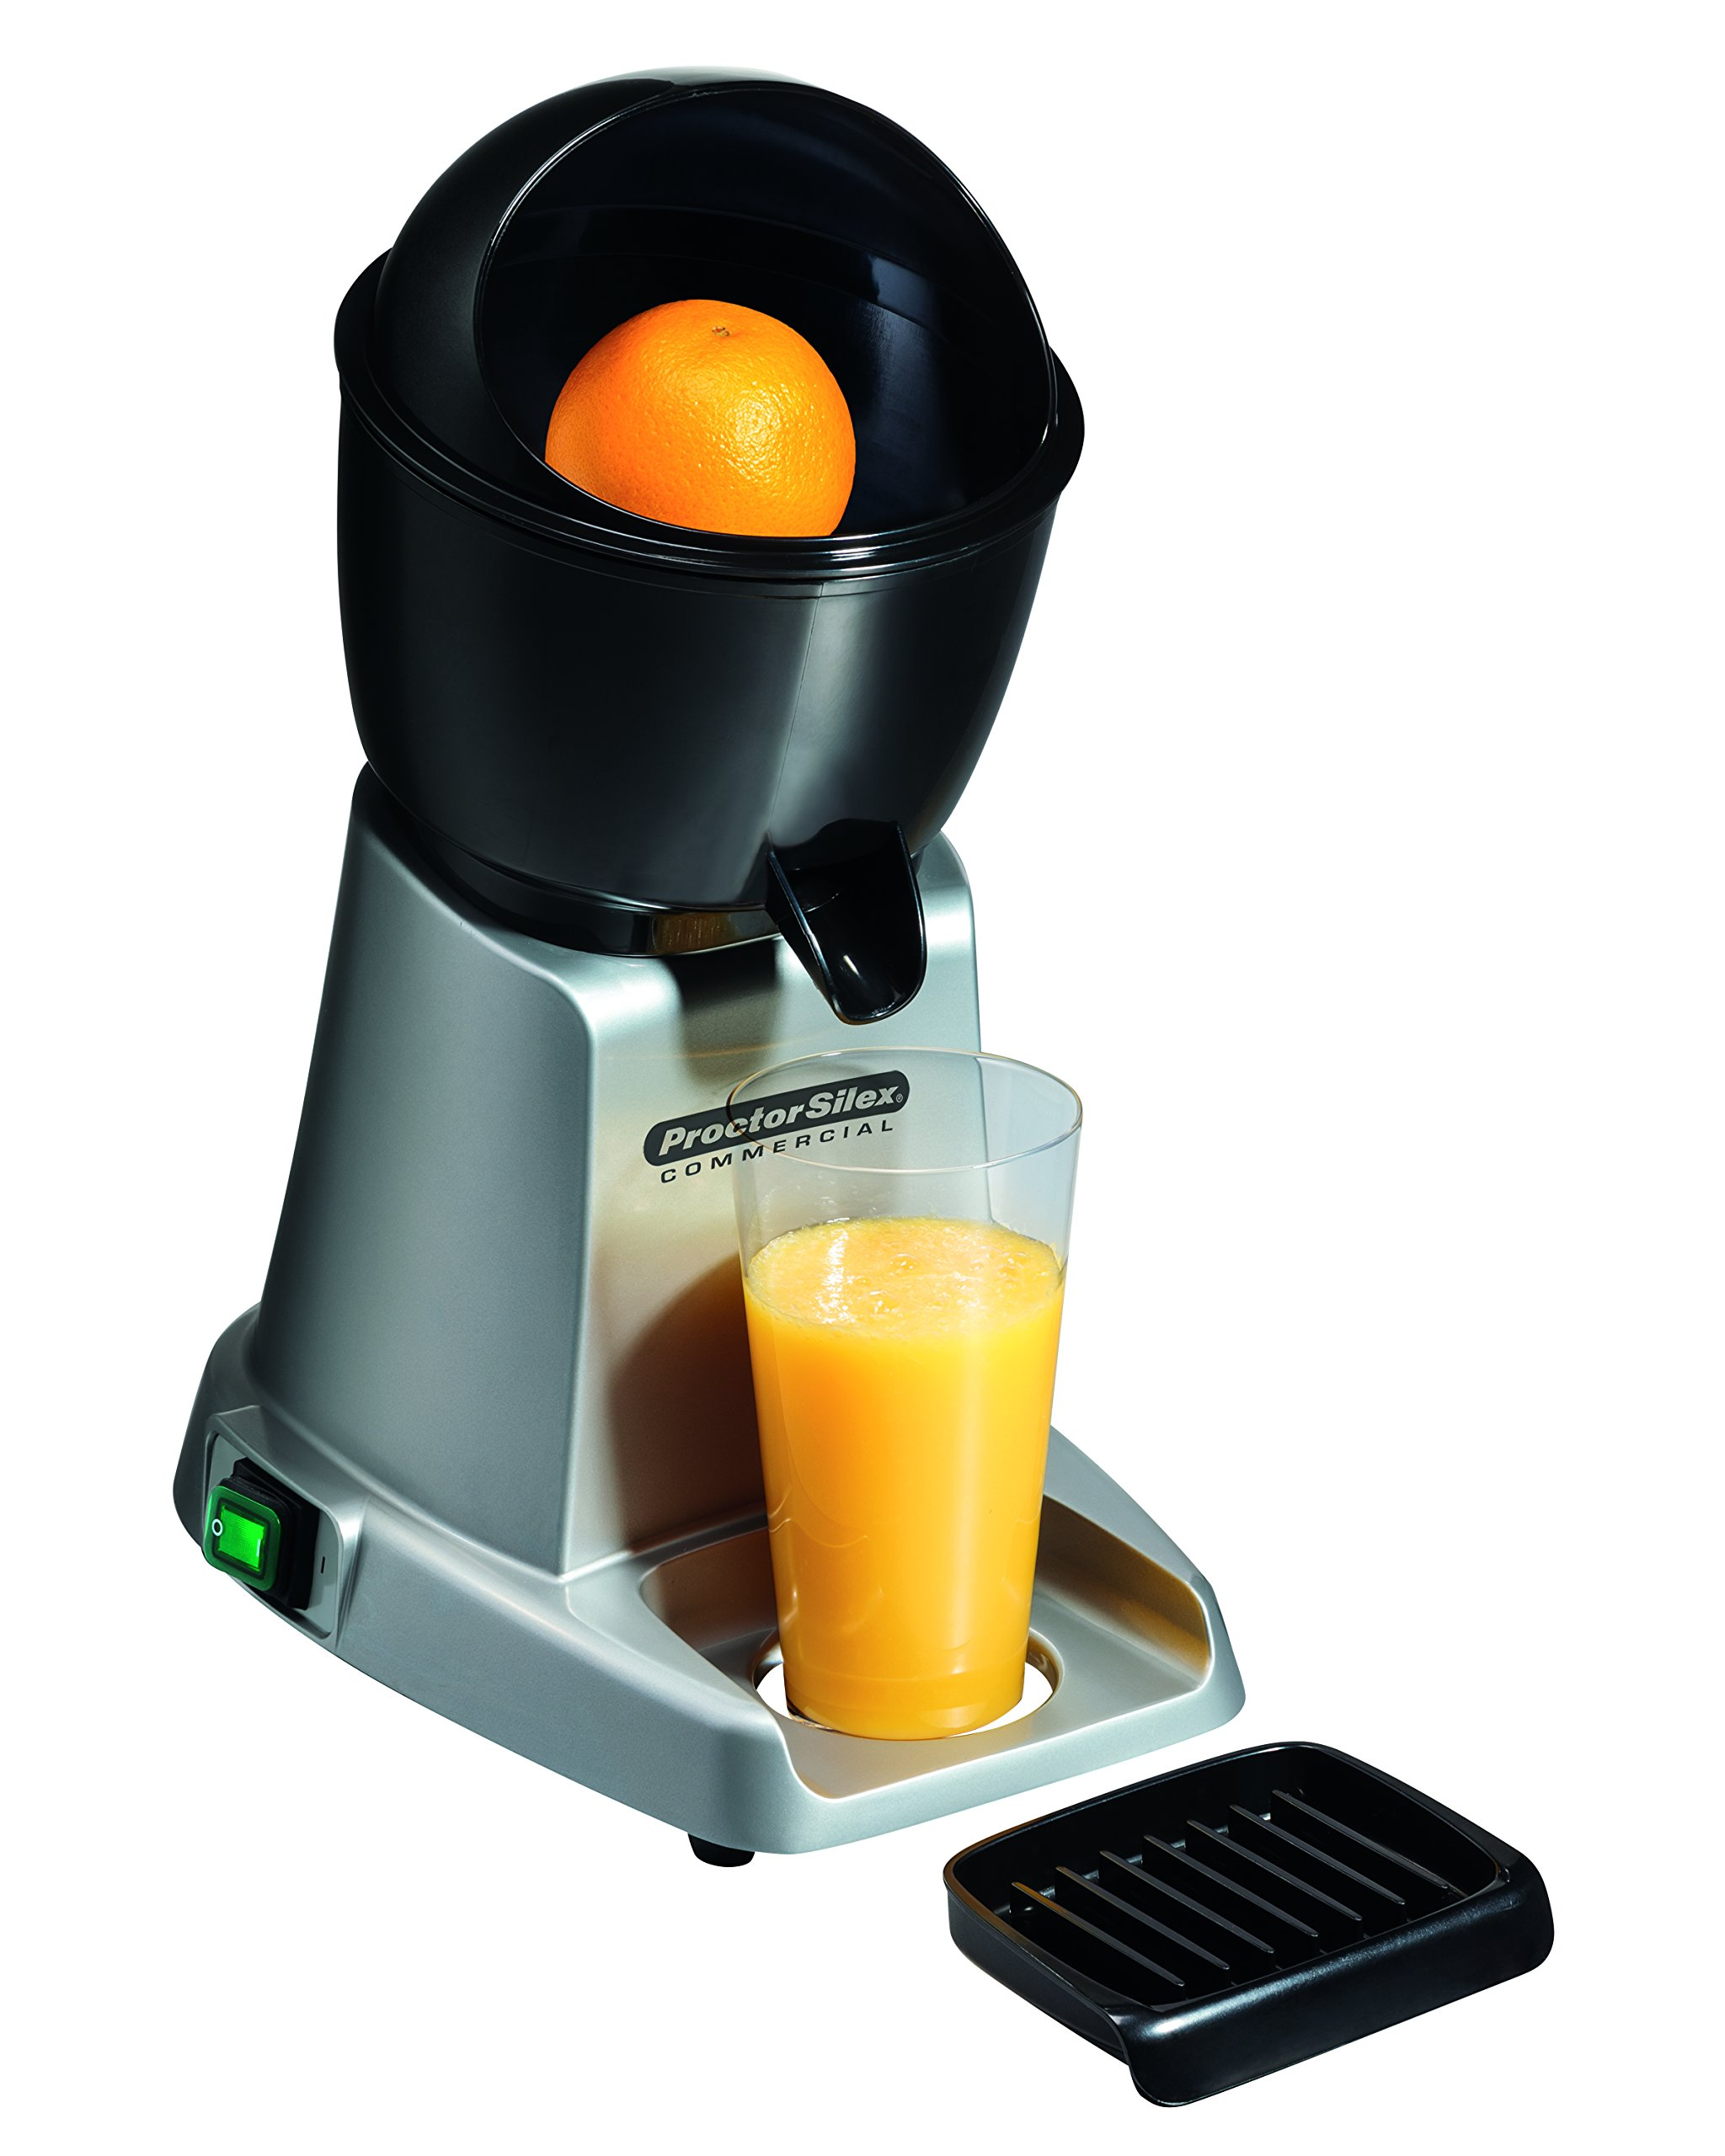 Proctor Silex Commercial 66900 Electric Citrus Juicer, 3 Reamer Sizes for Oranges, Lemons, Limes and Grapefruits, Removable Bowl, Strainer, Splashguard, Drip Tray, Black/Grey by Hamilton Beach (Image #5)